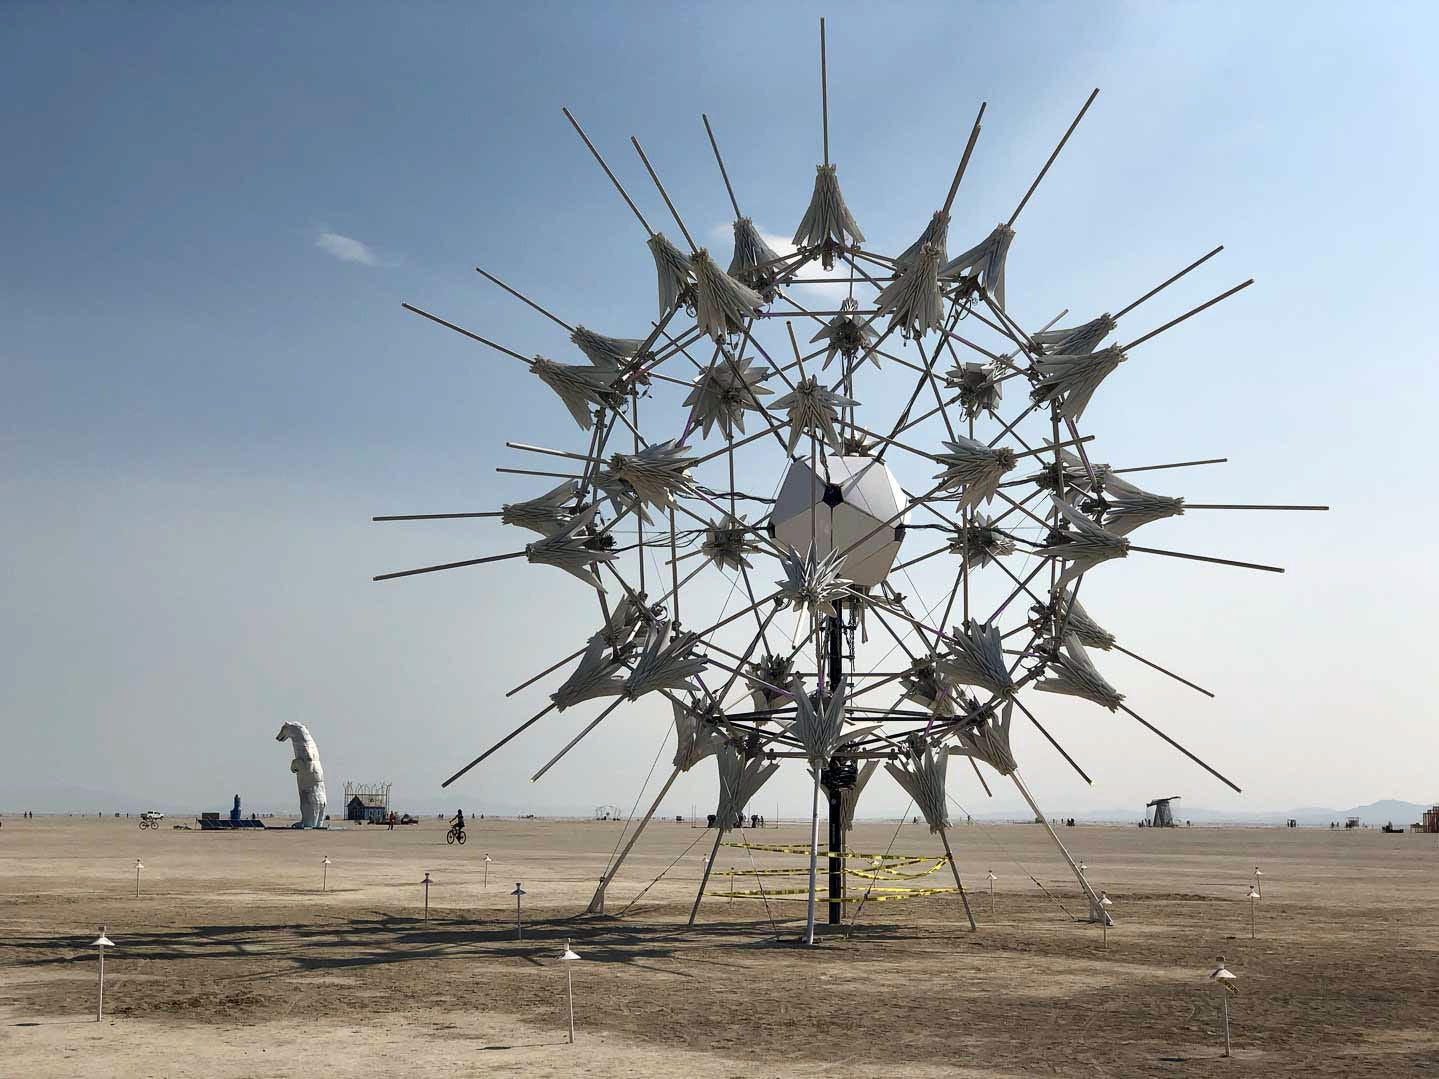 "RadiaLumia, by FoldHaus Collective, sits in the deep playa at Burning Man 2018. RadiaLumia harkens to radialoria, ""a tiny protozoa with intricate mineral skeletons that covered the desert thousands of years ago, when it was once the sea floor,"" according to the artist. To the left, a 34-foot tall polar bear sculpture made of white car hoods stands in the desert to represent the disappearance of polar bears because of greenhouse gases emitted by fossil fuel-burning vehicles."